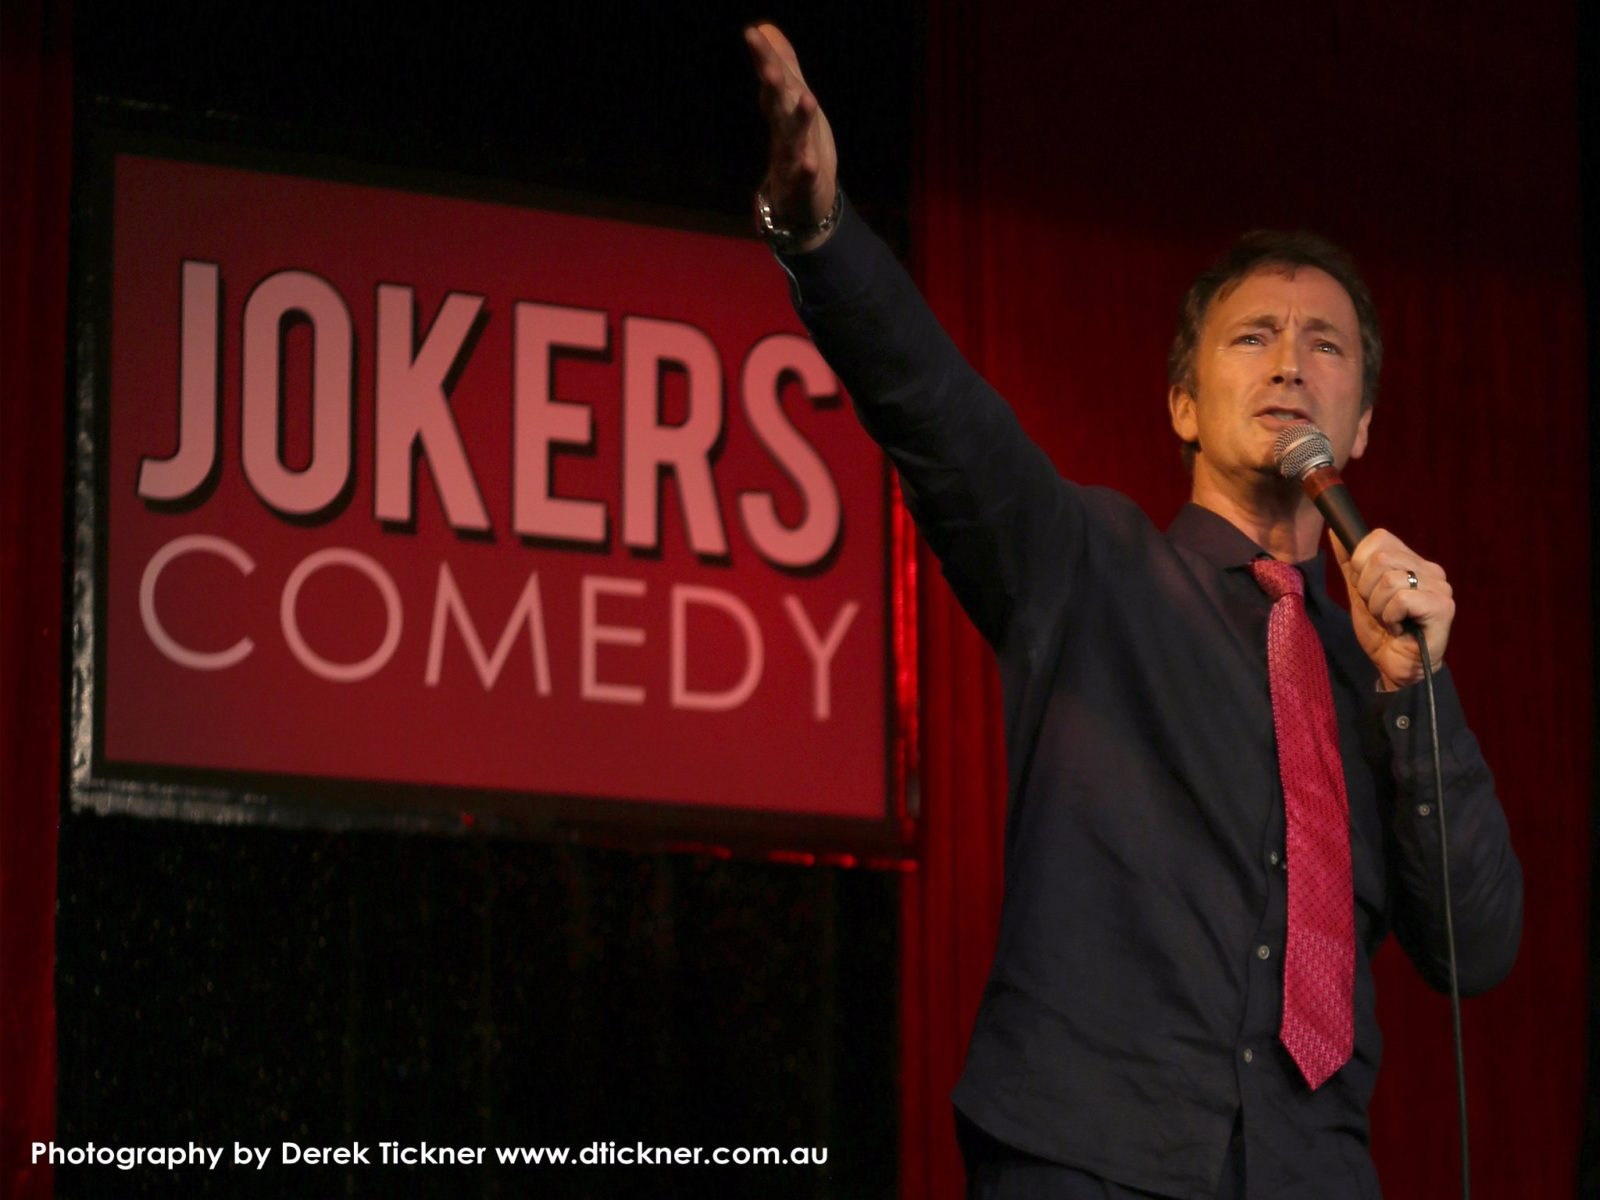 Jeff Green performs at Jokers Comedy Club